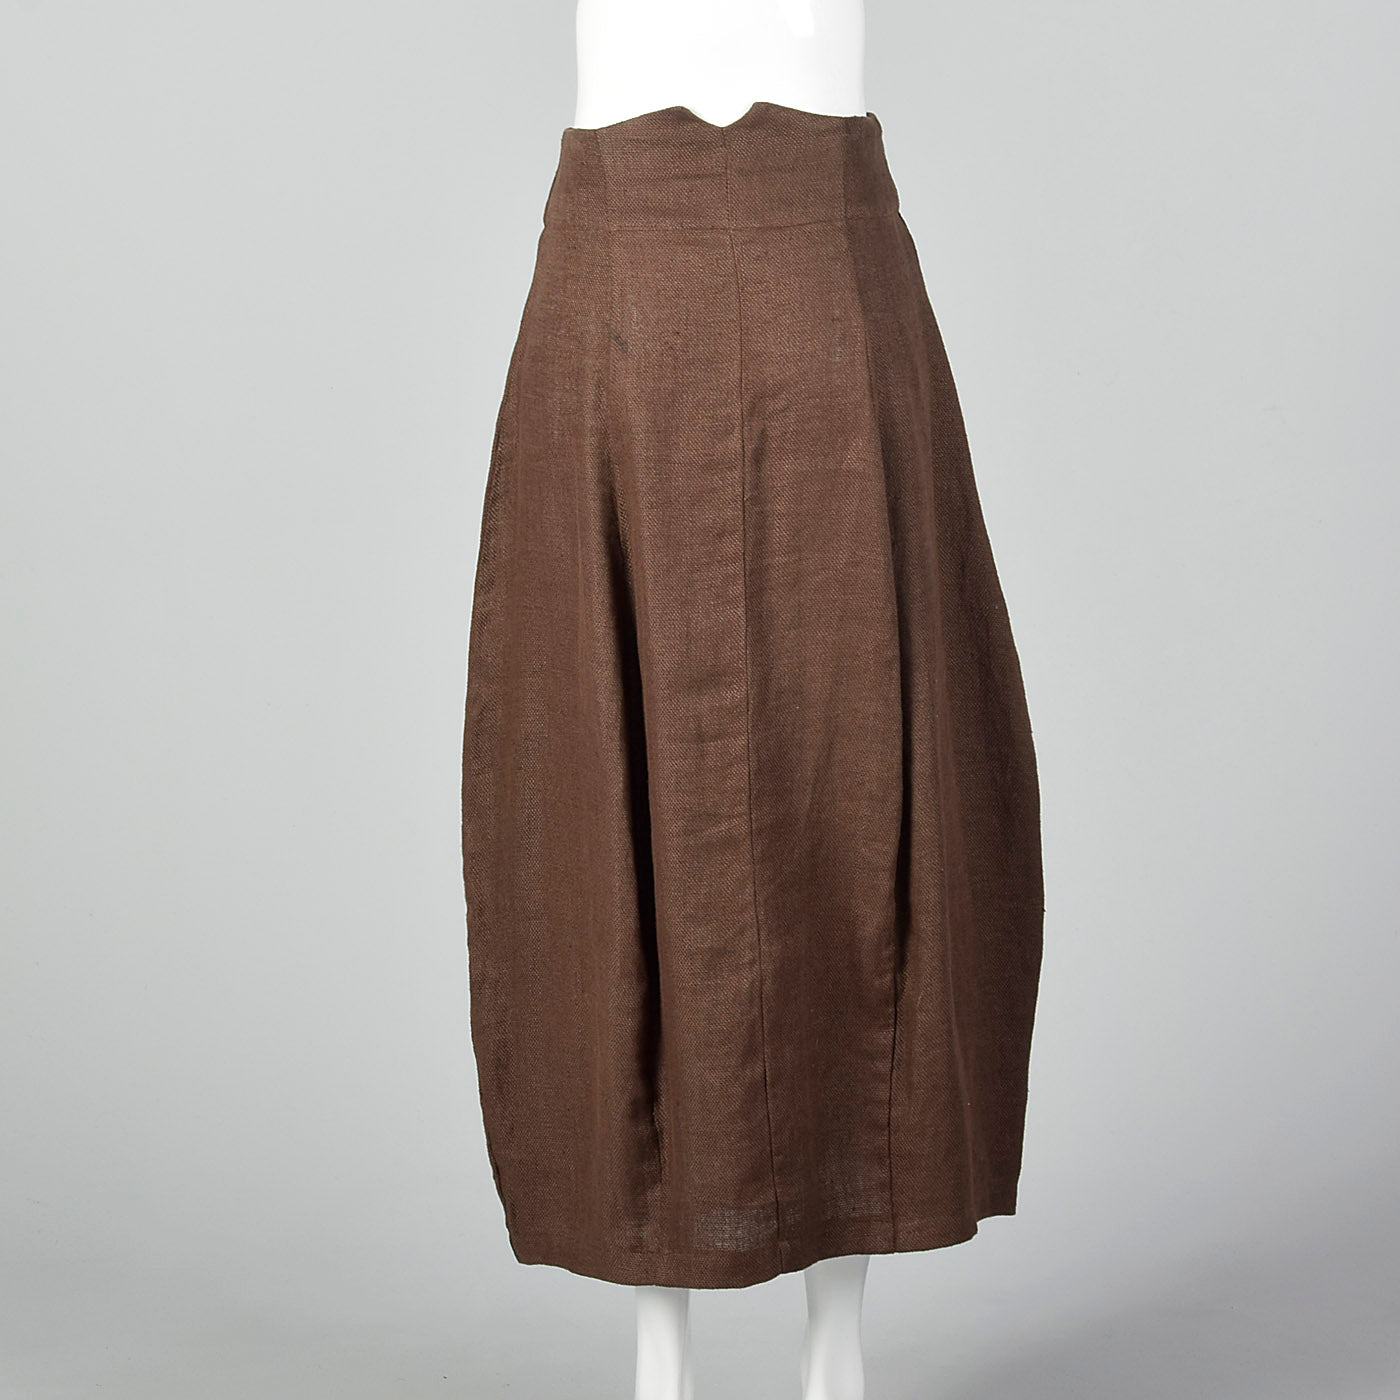 1990s Brown Linen Skirt with Button Front